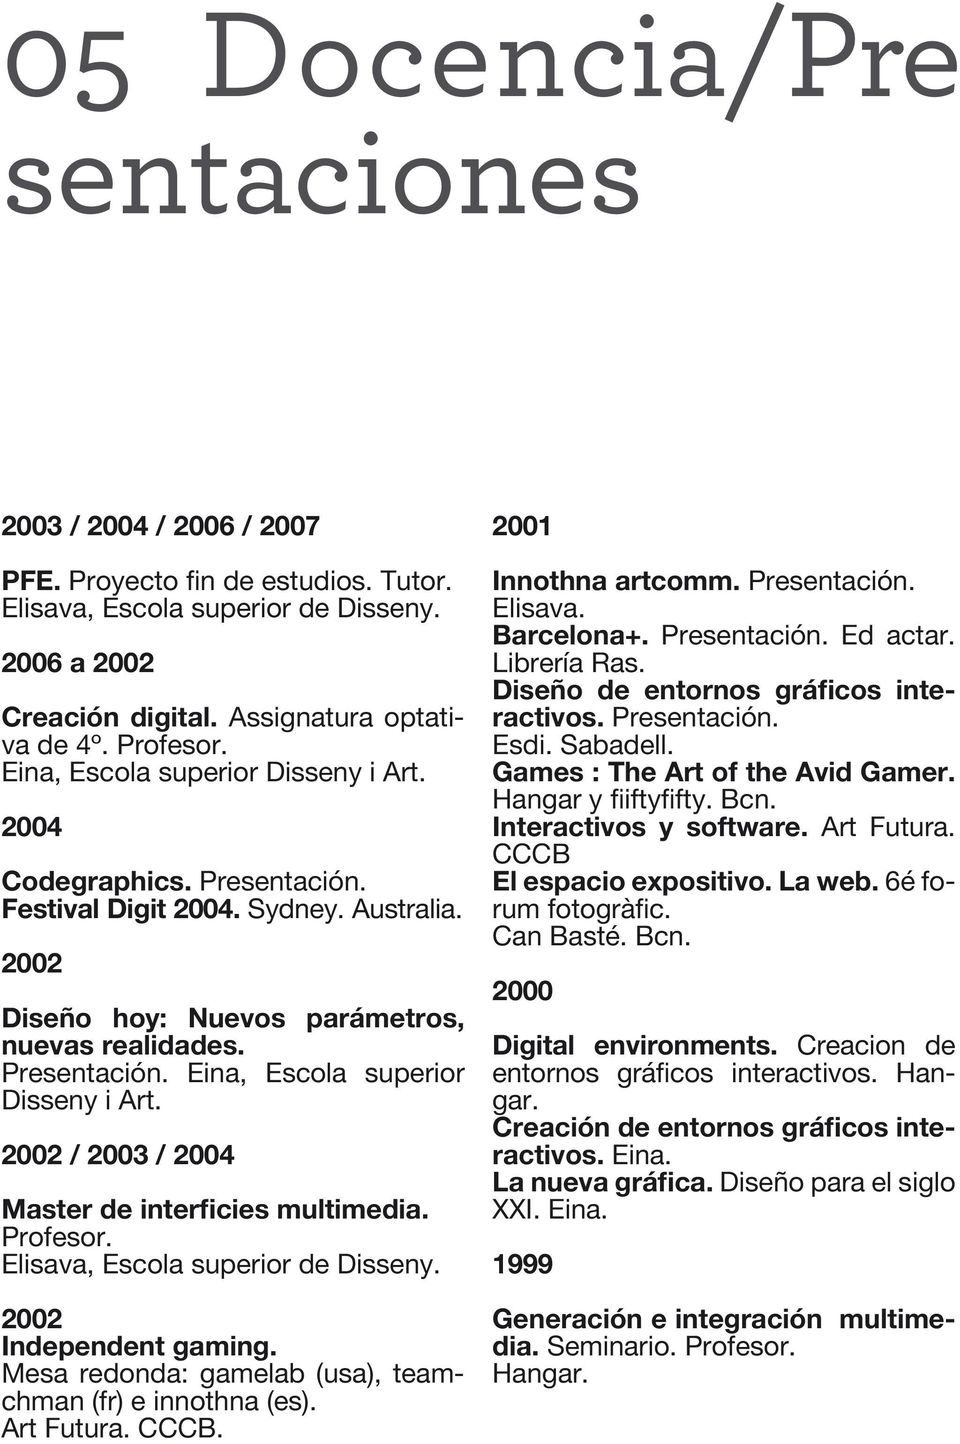 2002 / 2003 / 2004 Master de interficies multimedia. Profesor. Elisava, Escola superior de Disseny. 2002 Independent gaming. Mesa redonda: gamelab (usa), teamchman (fr) e innothna (es). Art Futura.